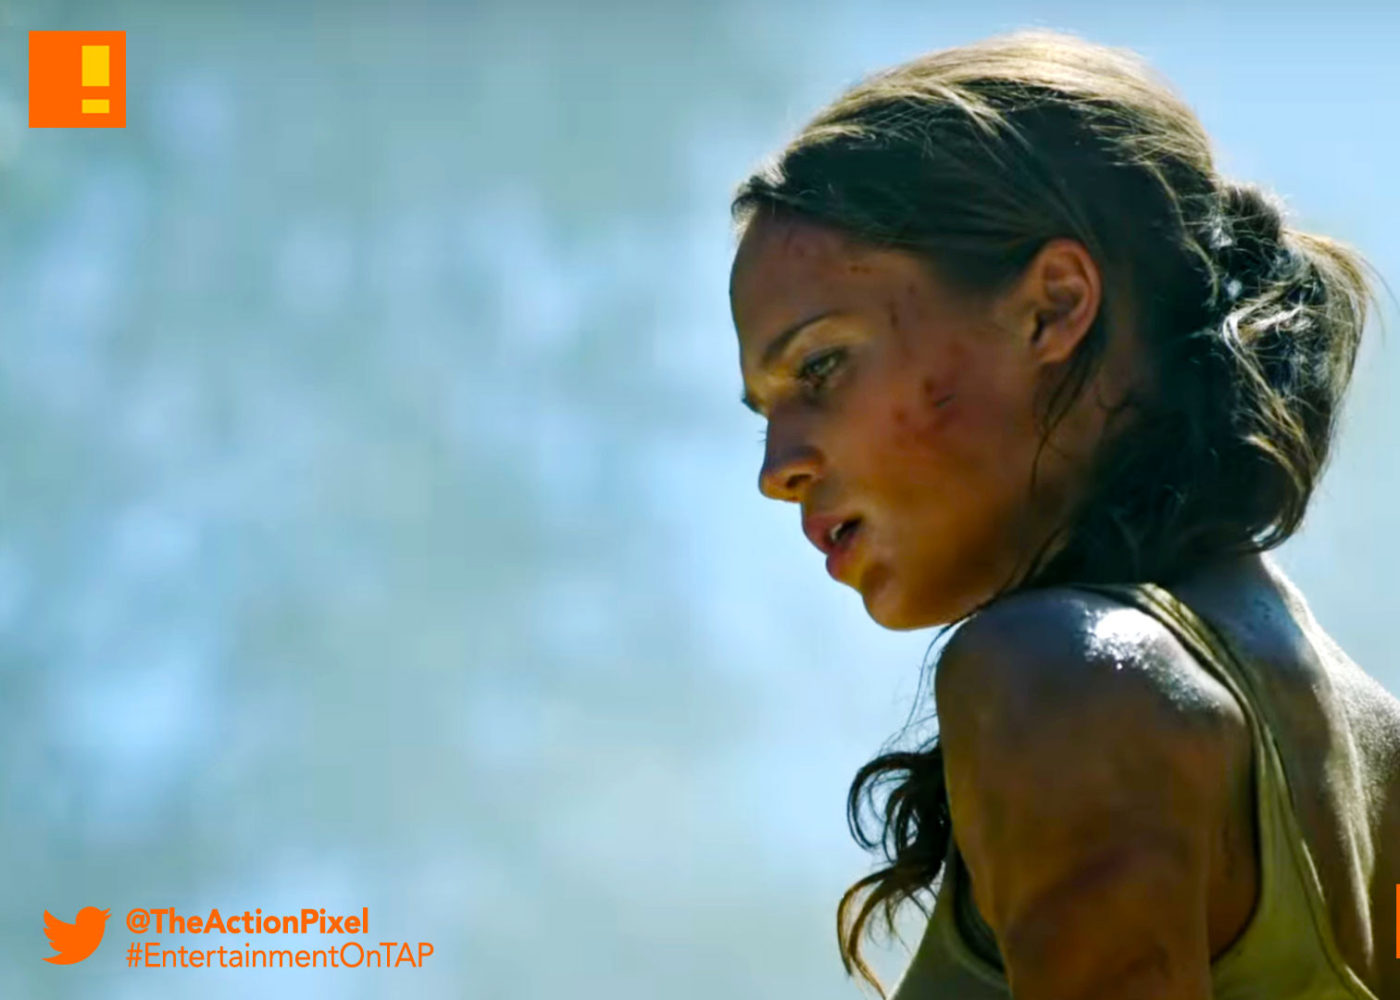 bts, trailer, TOMB RAIDER, ALICIA vikander, lara croft, first look, entertainment on tap, the action pixel,